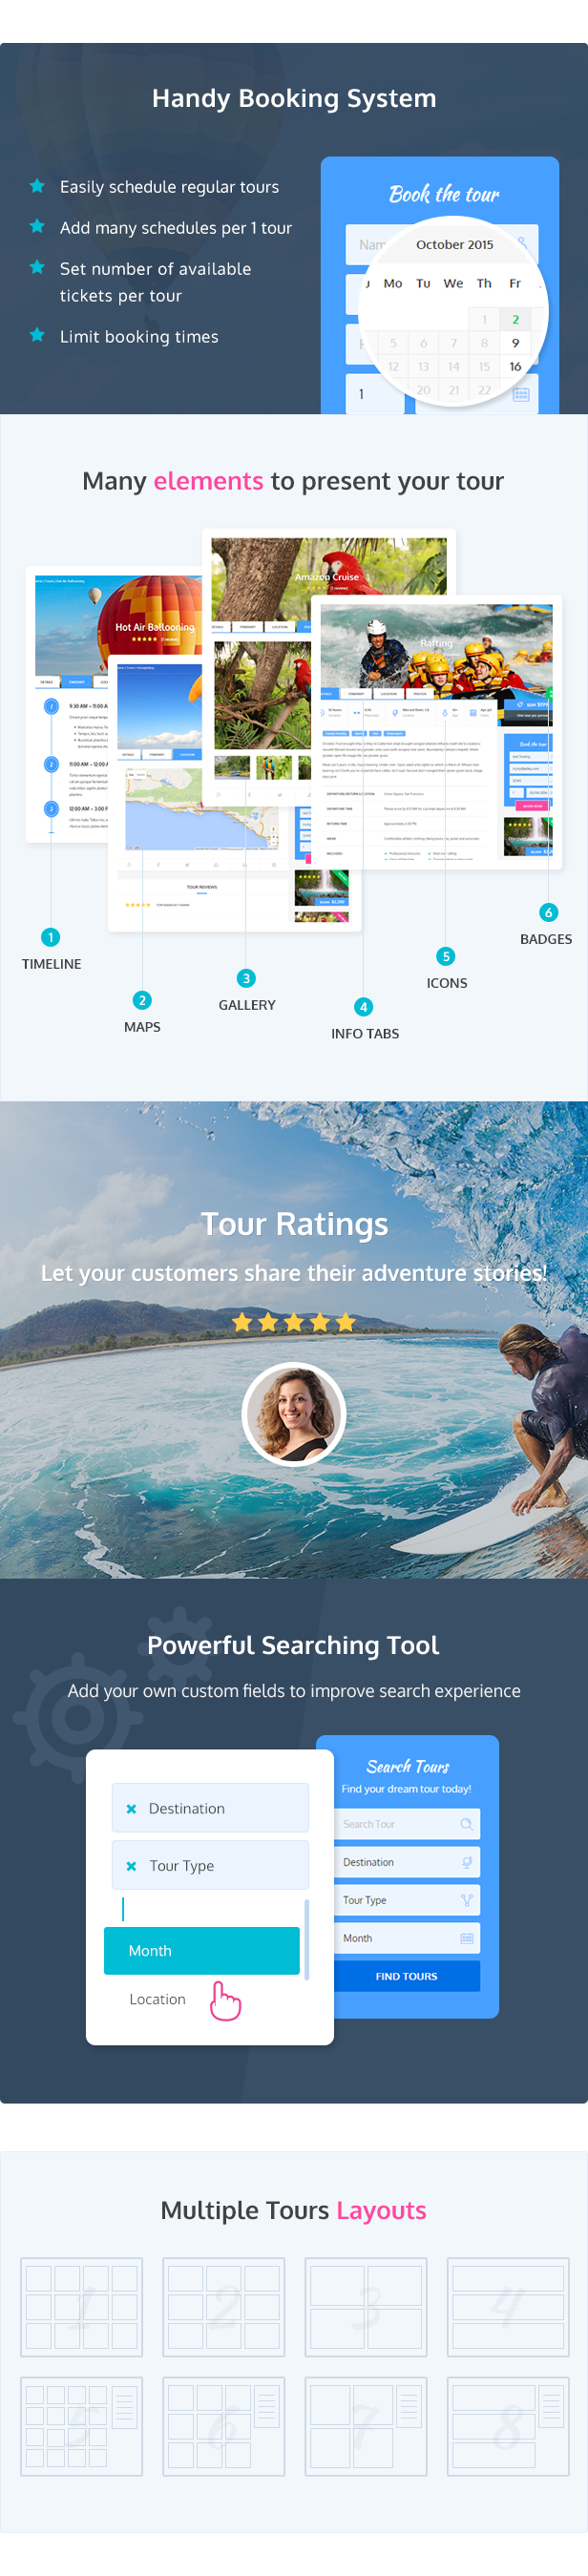 Adventure Tours - WordPress Tour/Travel Theme - 3